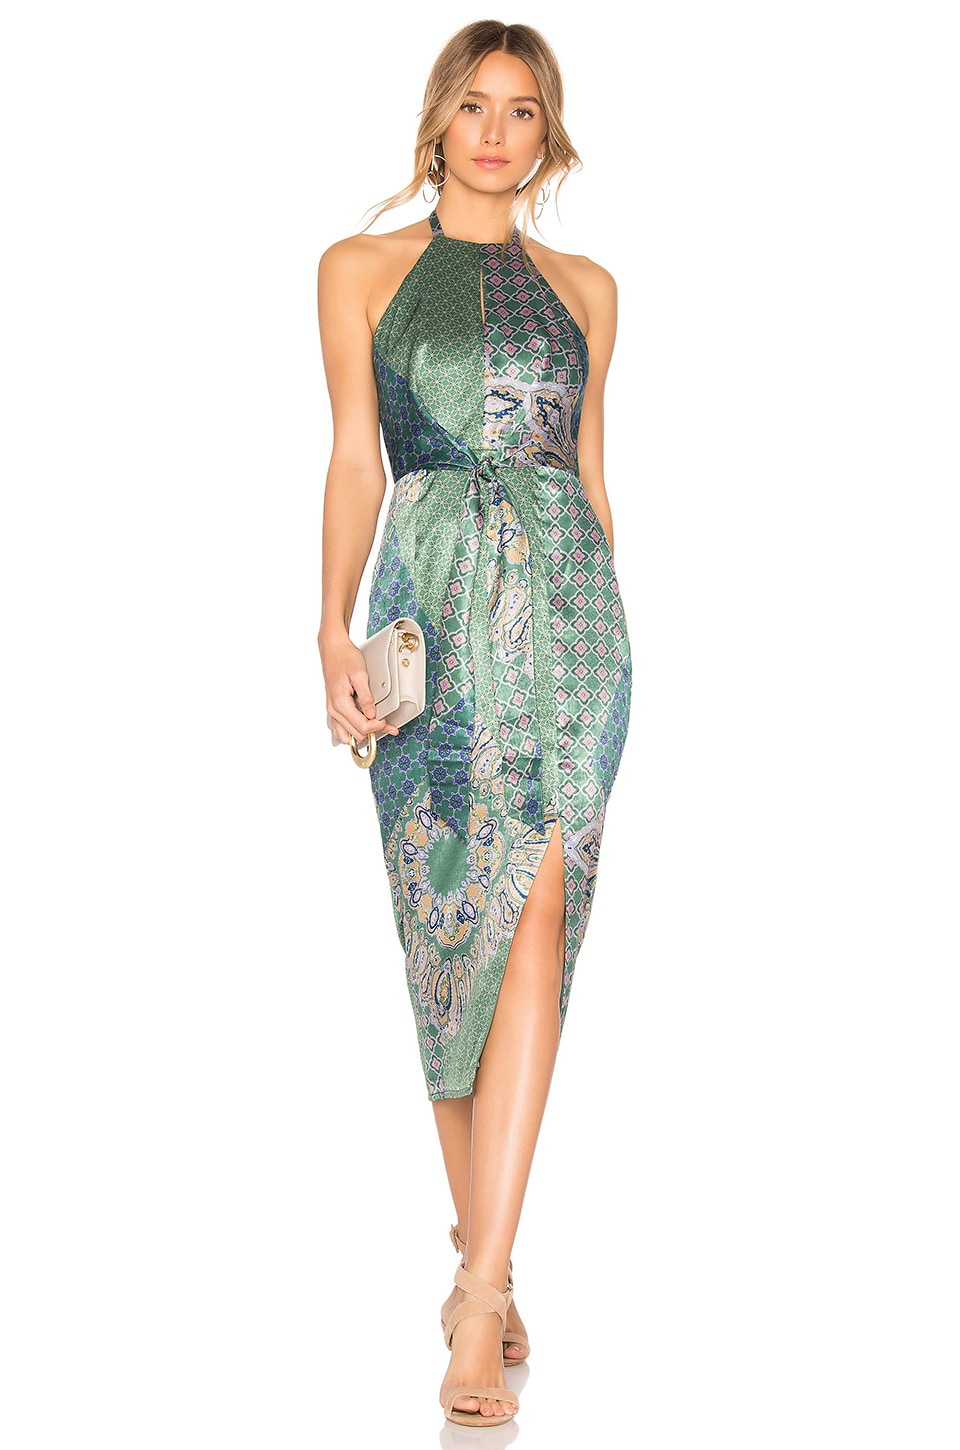 House of Harlow 1960 x REVOLVE Milo Dress in Moss Green Patchwork